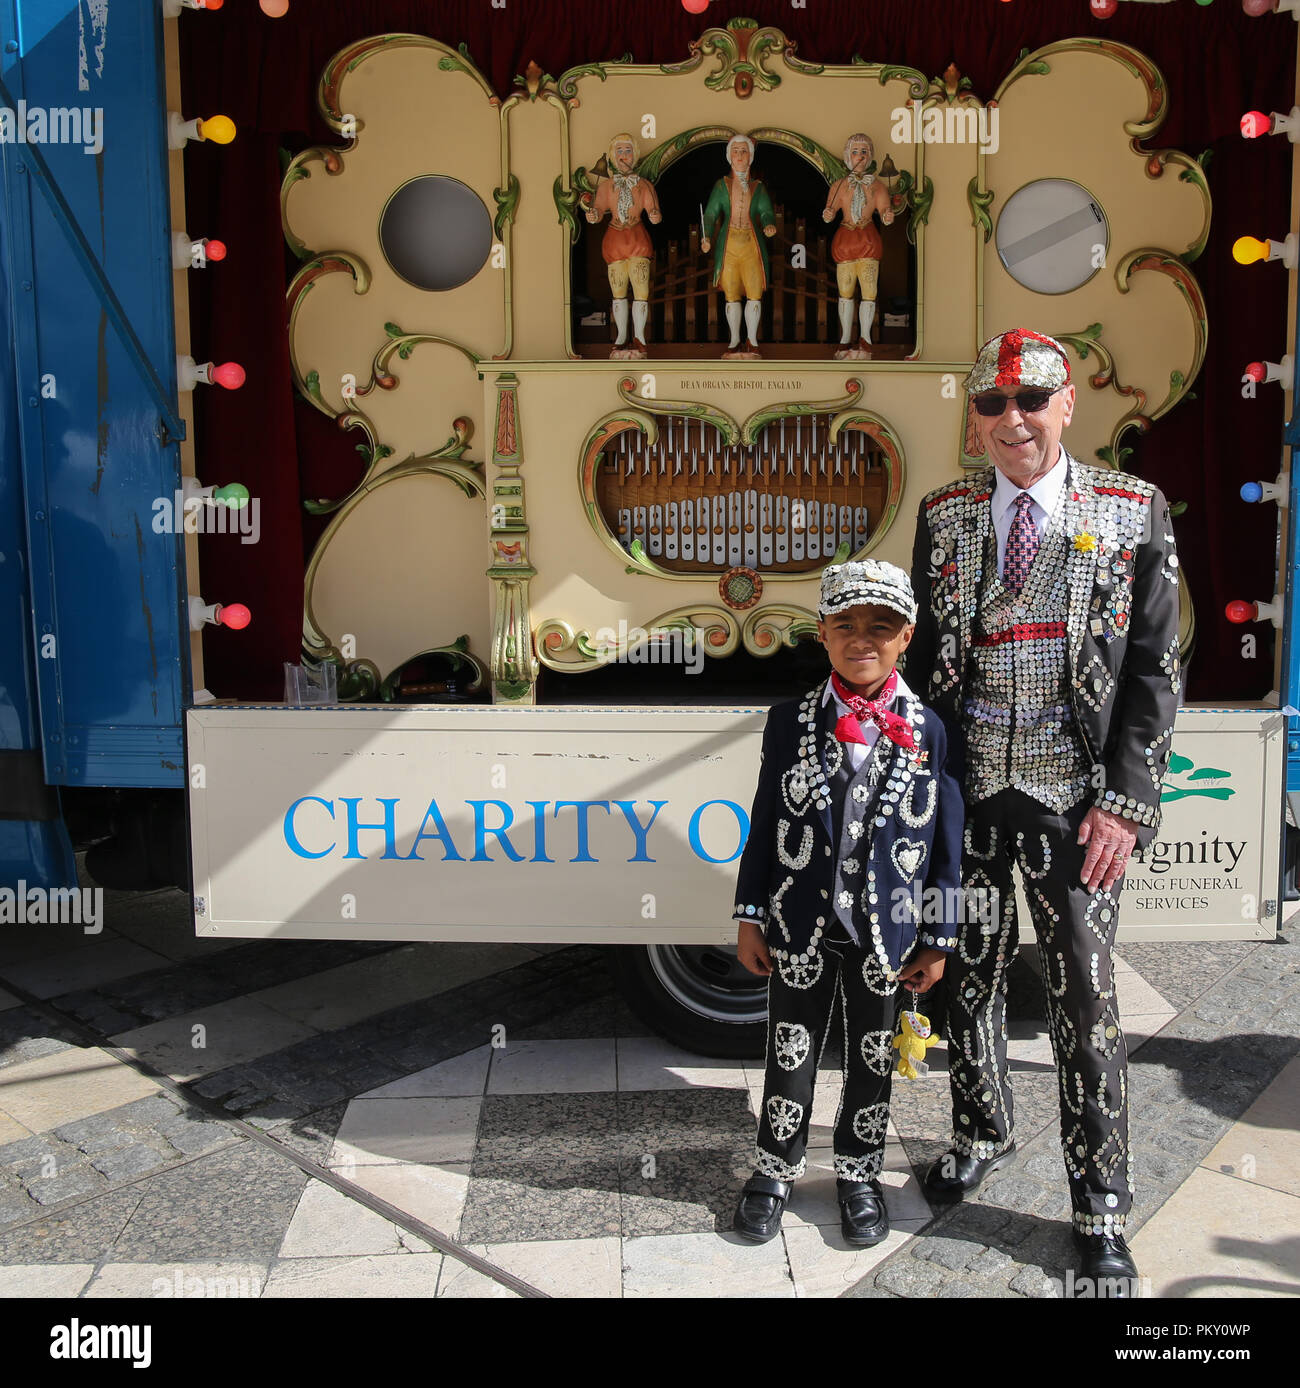 London UK  16 September 2018 Pearly Kings and Queens Harvest Festival at Guildhall Yard,Dressed in their best dark suits covered in hundreds of bright pearl buttons, the Pearly Kings and Queens of London got  together for the biggest event in the Pearly calendar, .@Paul Quezada-Neiman/Alamy Live Credit: Paul Quezada-Neiman/Alamy Live News Credit: Paul Quezada-Neiman/Alamy Live News - Stock Image